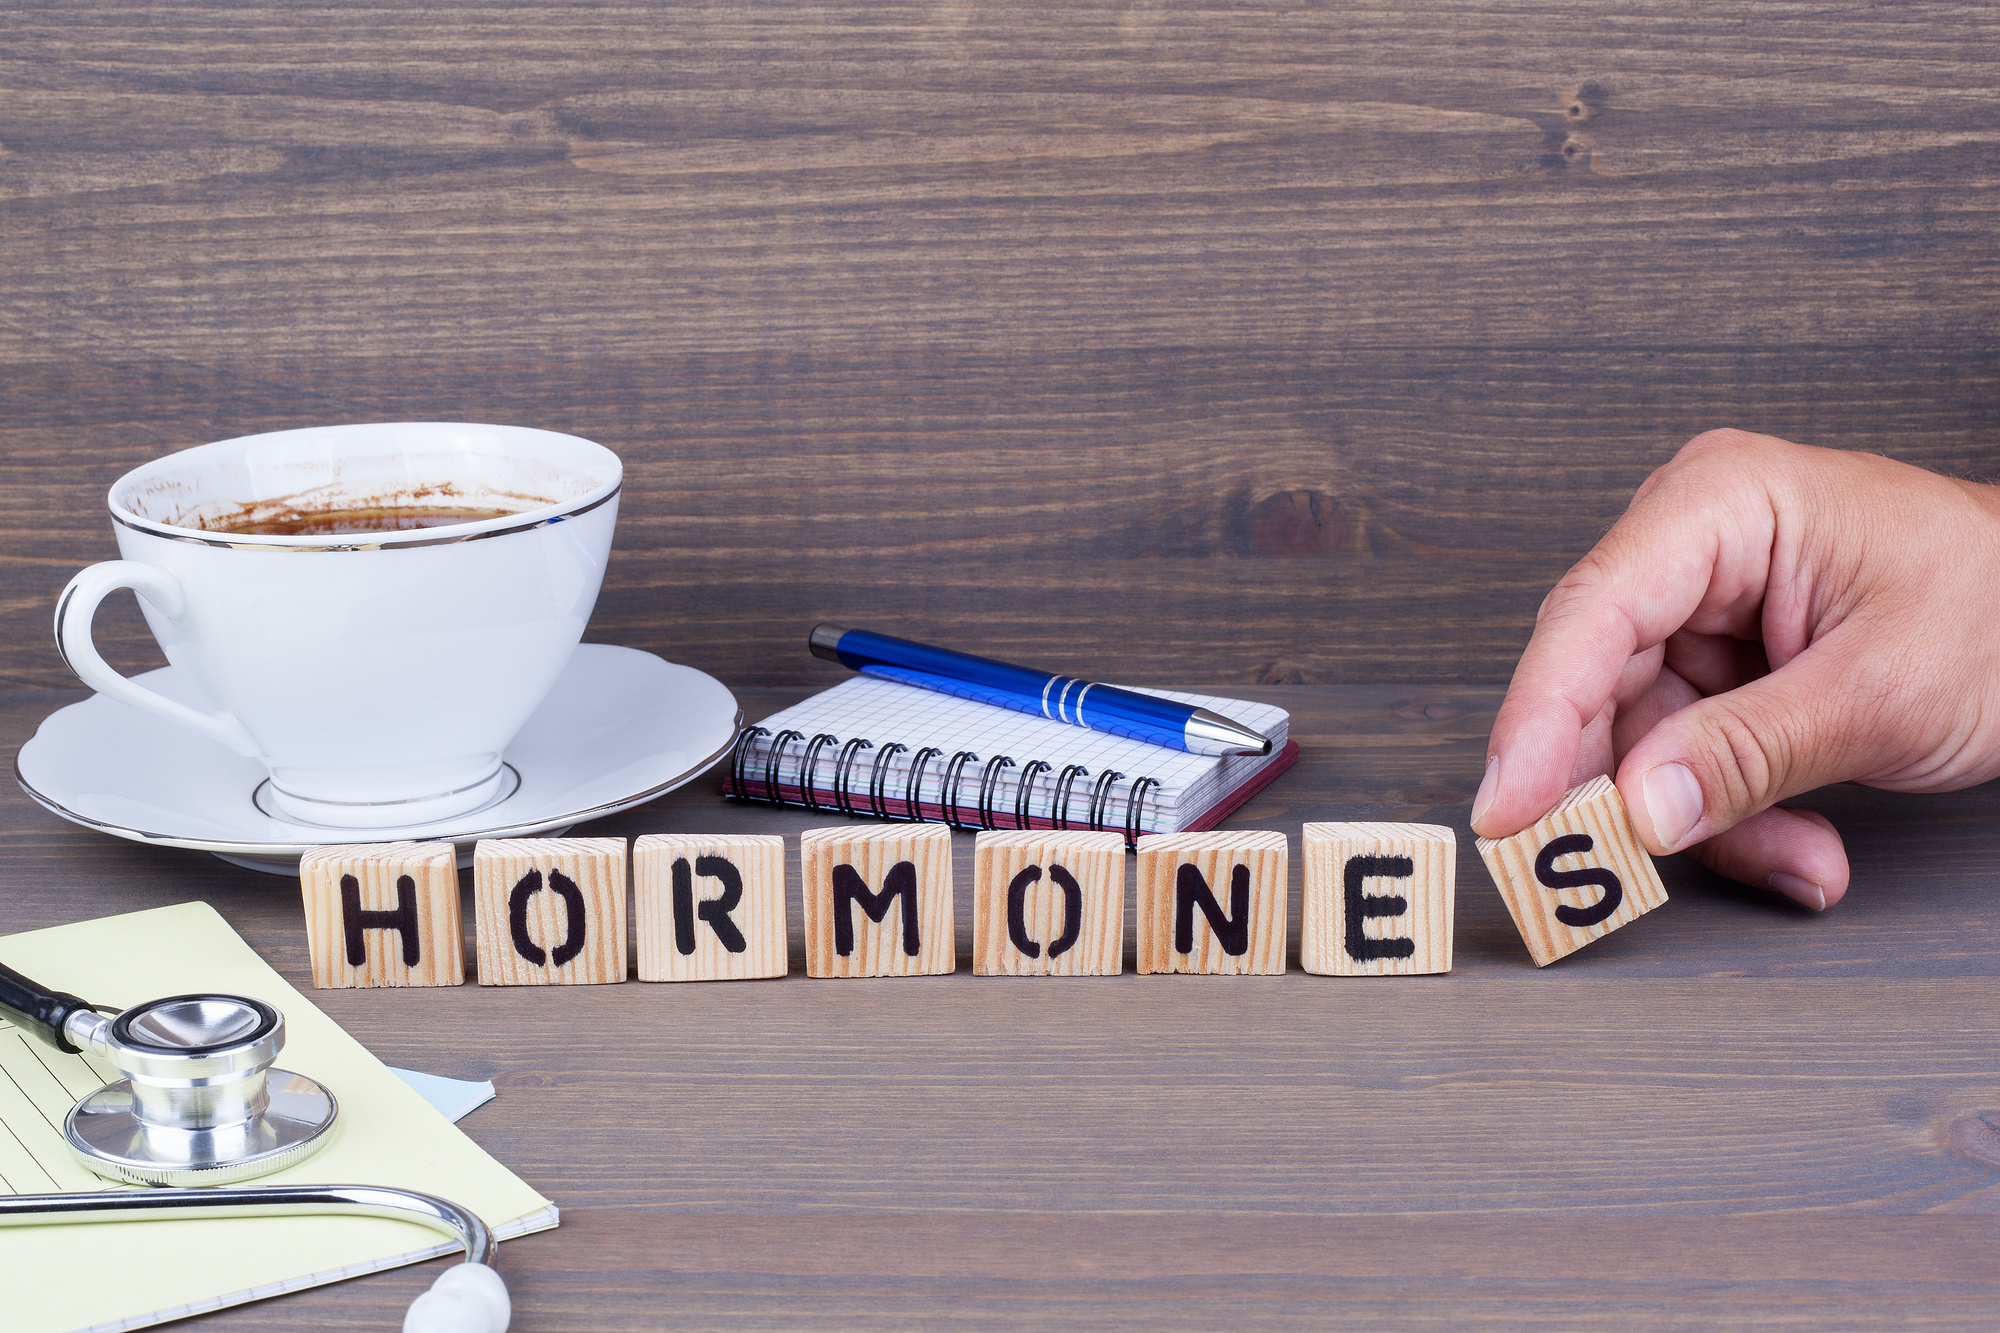 how to get hormone therapy germany